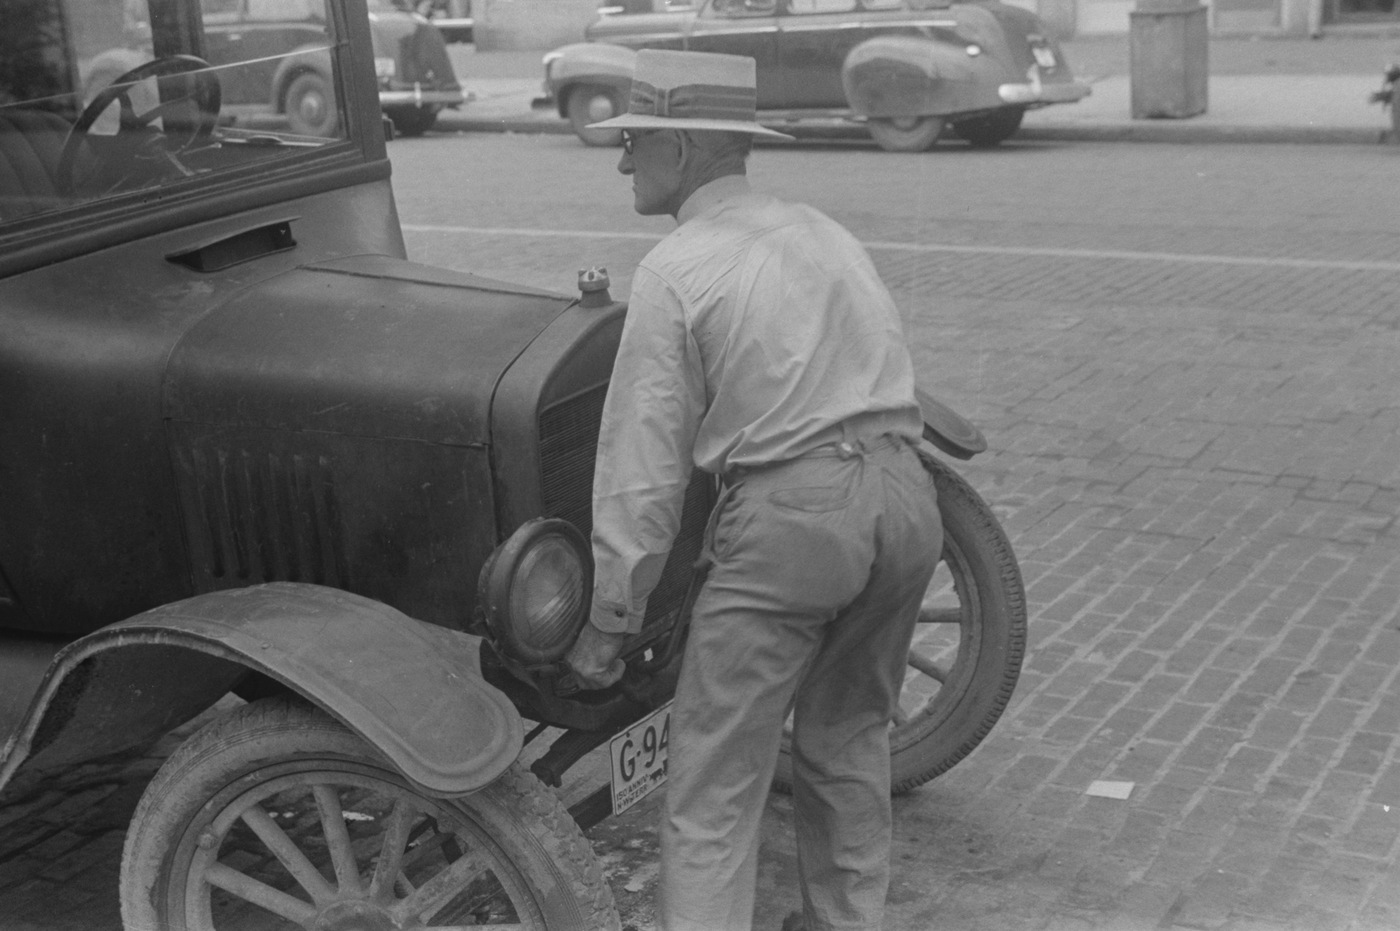 Black and white photo of man working on a 1938 Ford Model T car (Library of Congress photo)